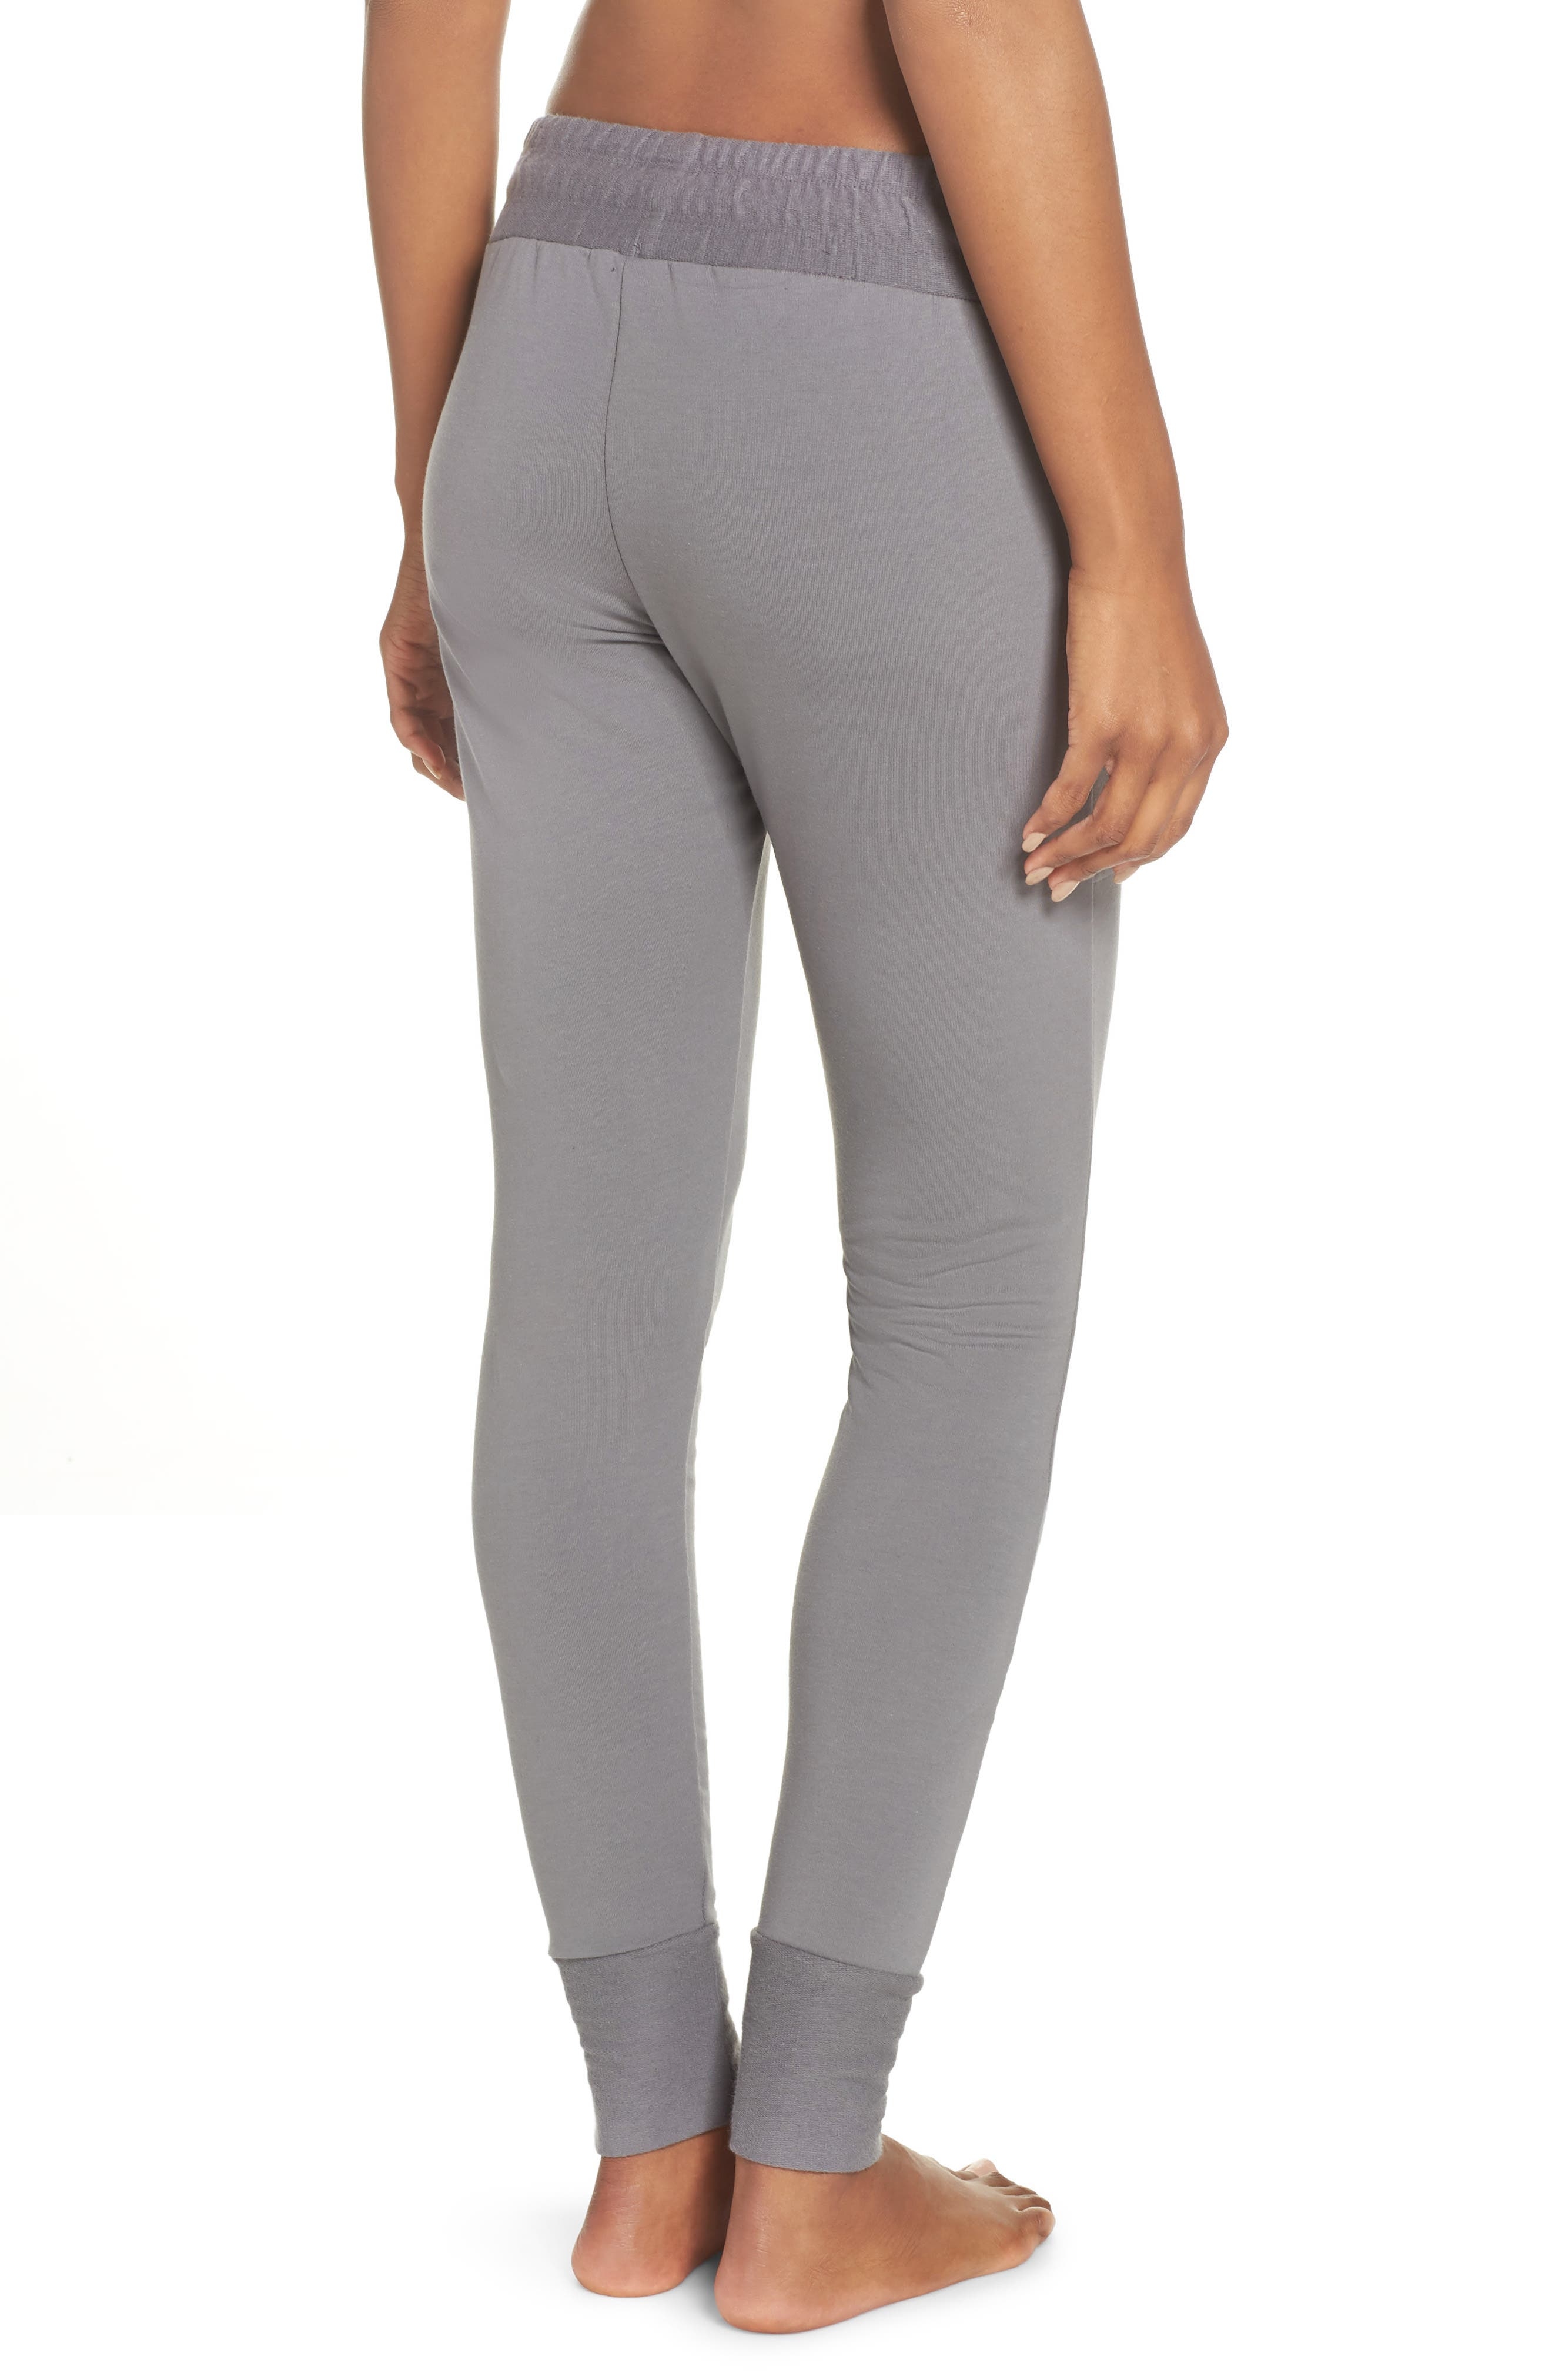 FREE PEOPLE MOVEMENT, Sunny Skinny Sweatpants, Alternate thumbnail 2, color, DARK GREY